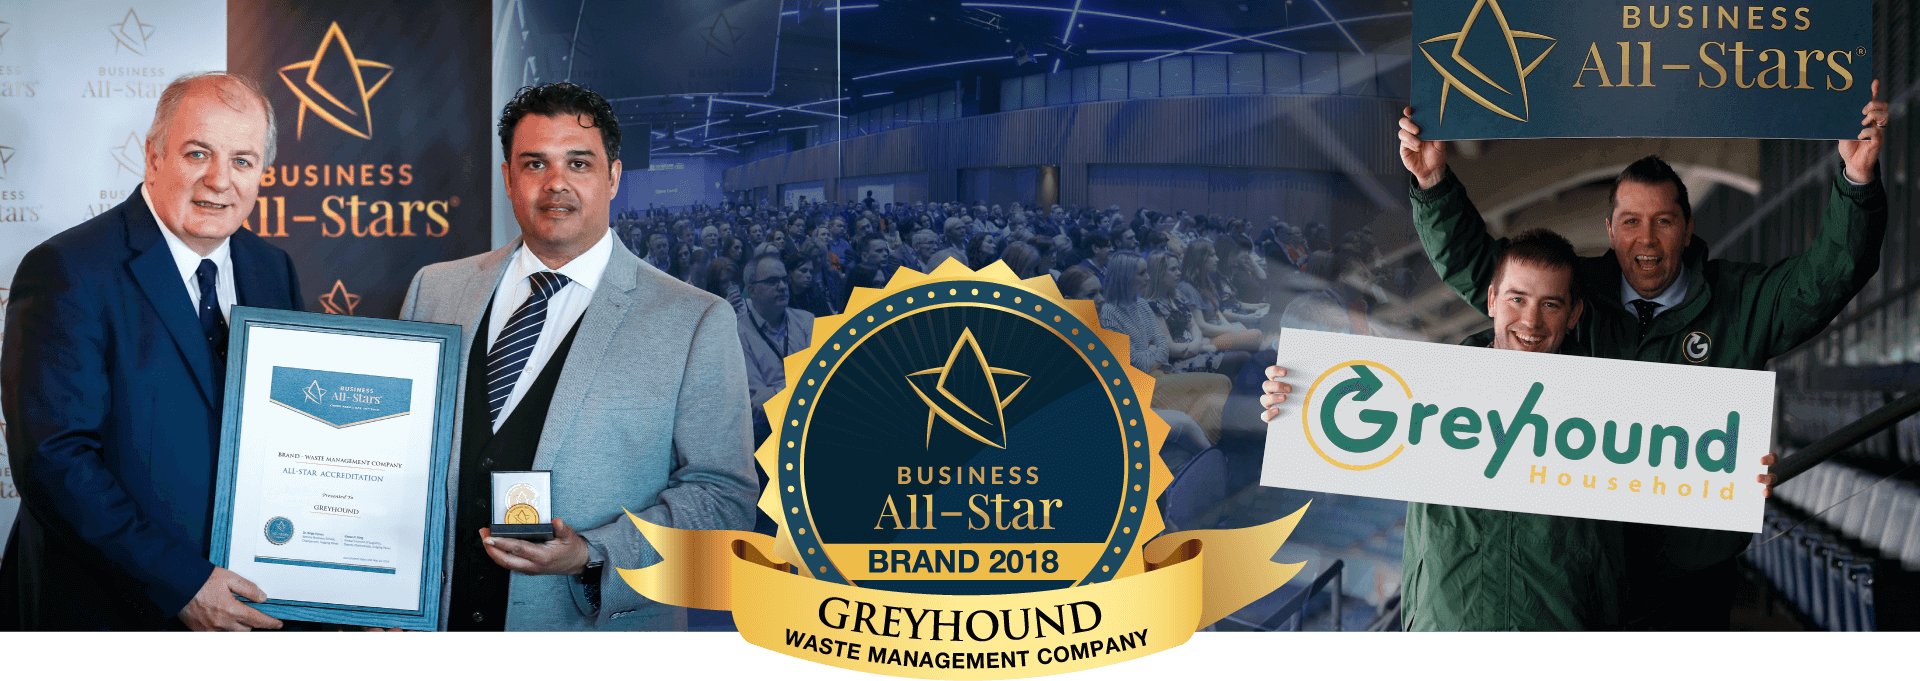 Business All - Stars Award, Croke Park Dublin